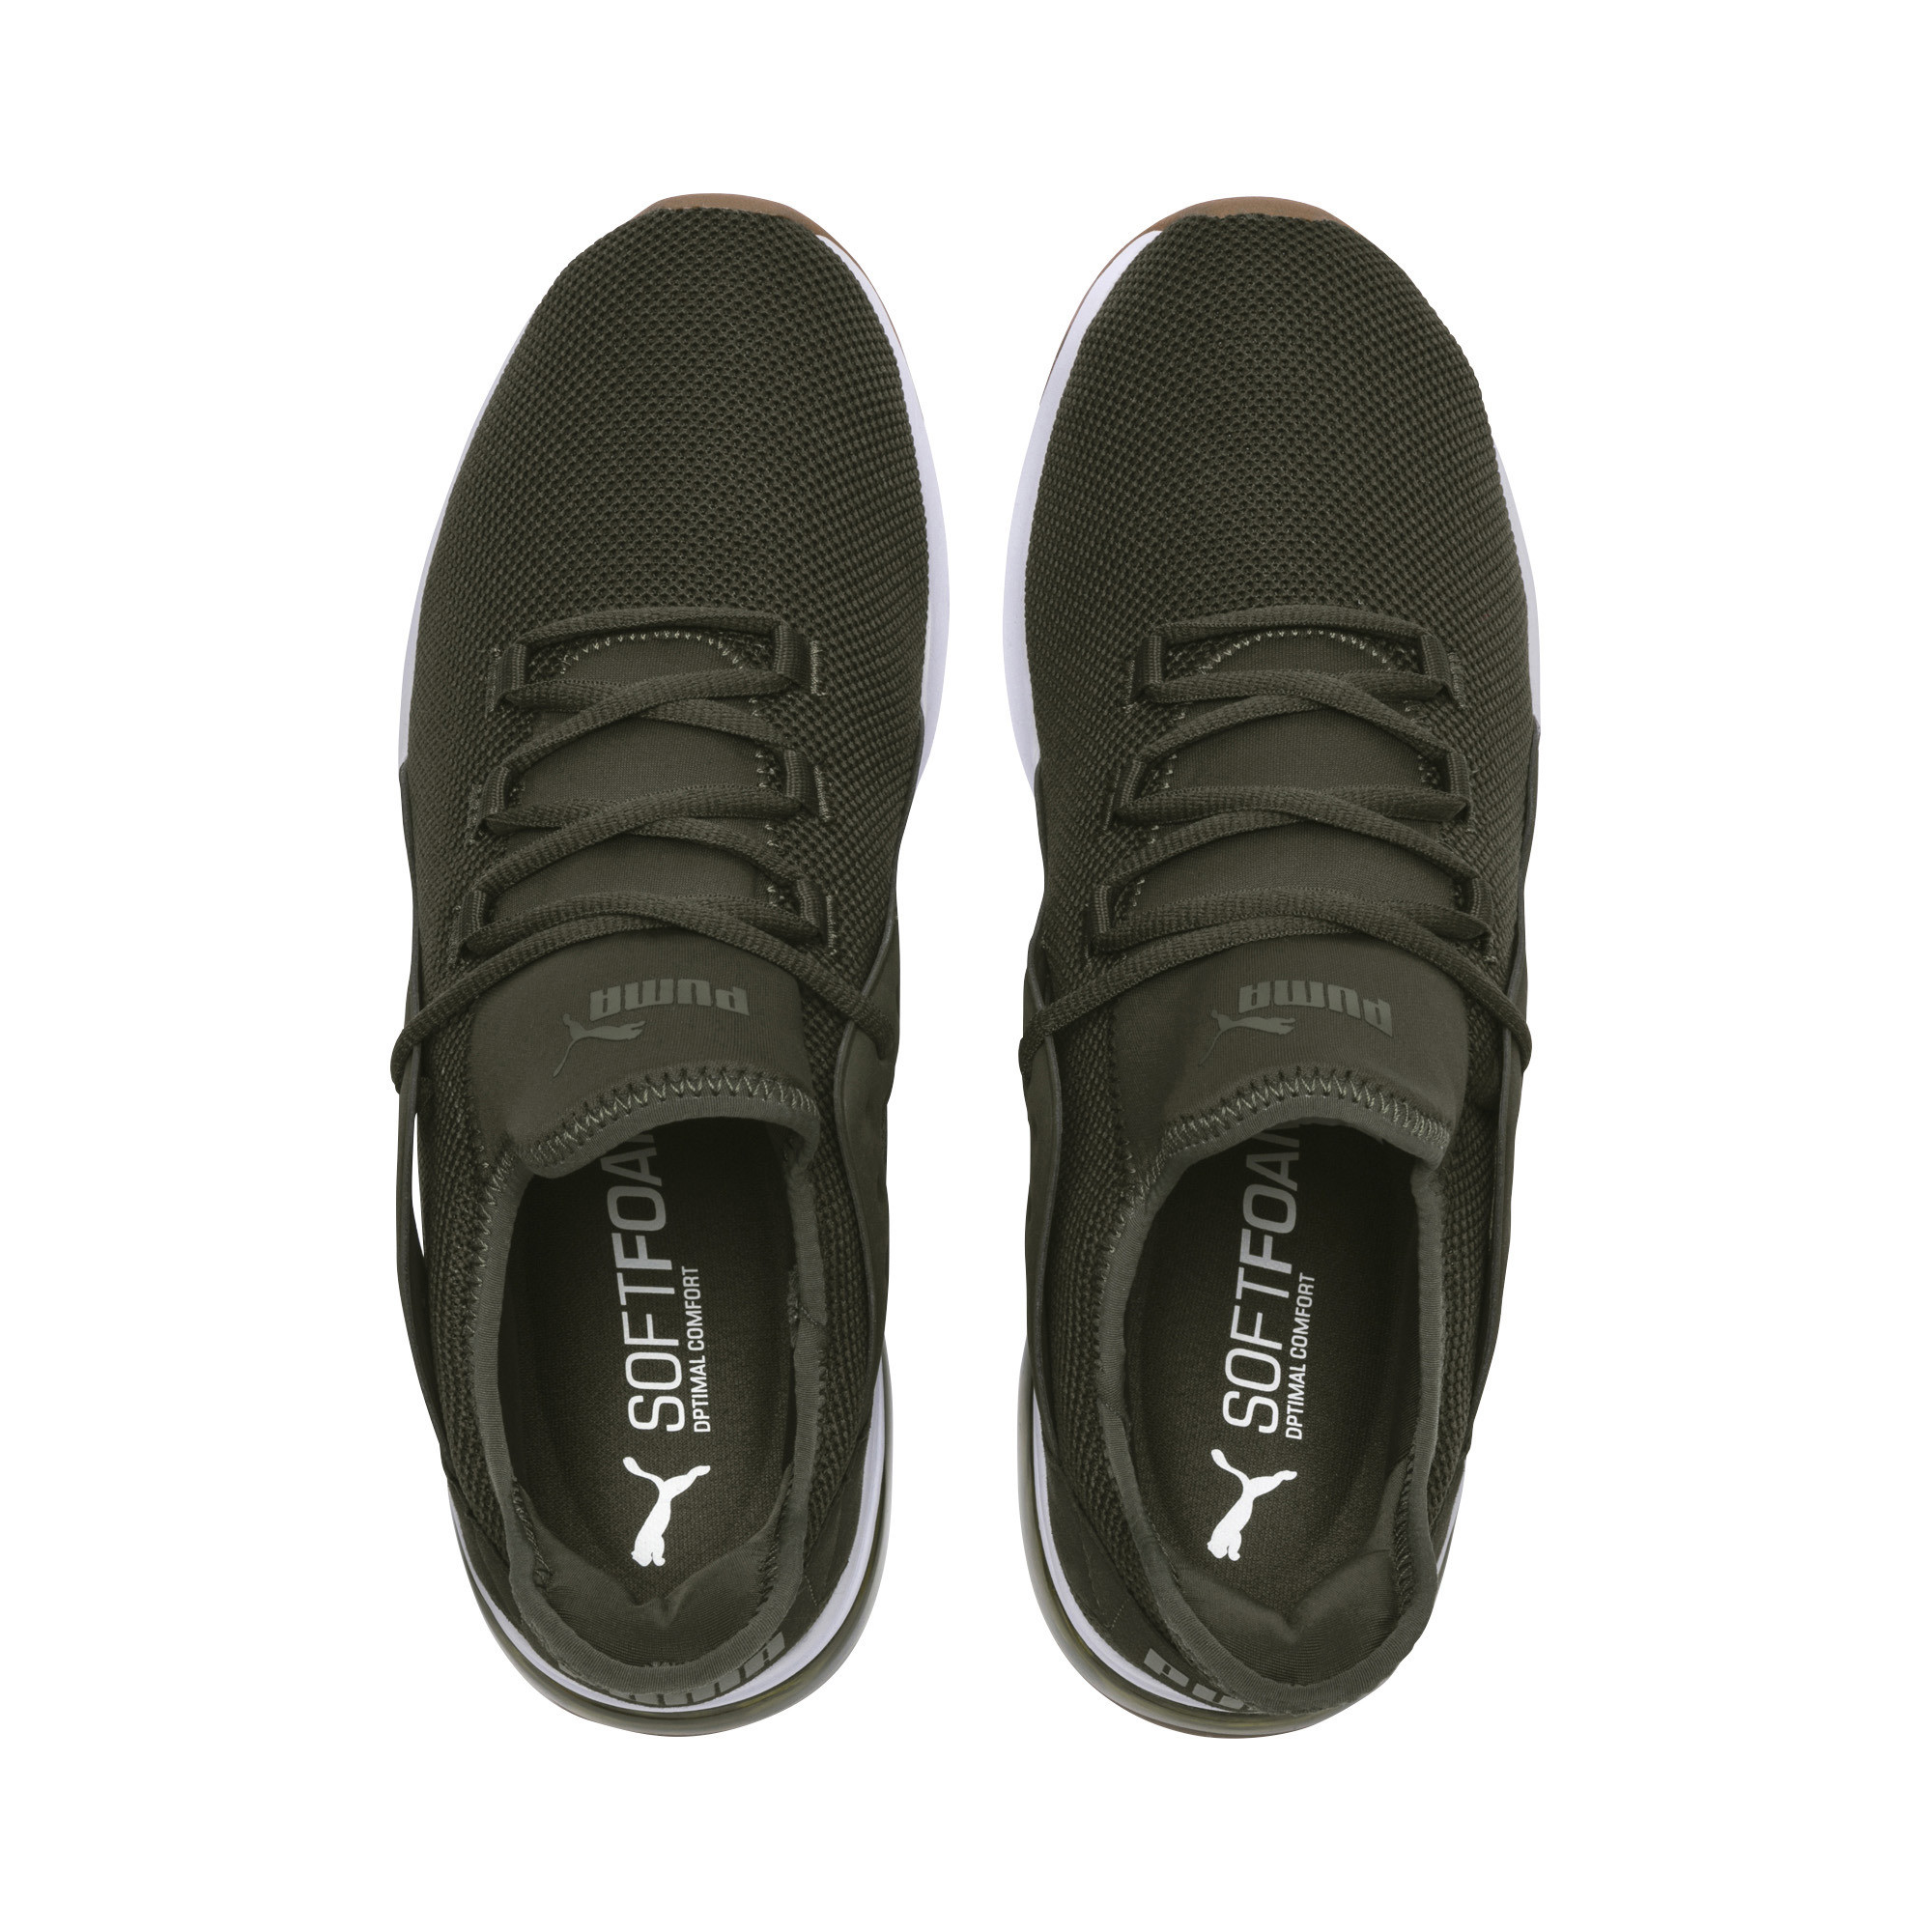 PUMA-Electron-Street-Sneakers-Men-Shoe-Basics thumbnail 7